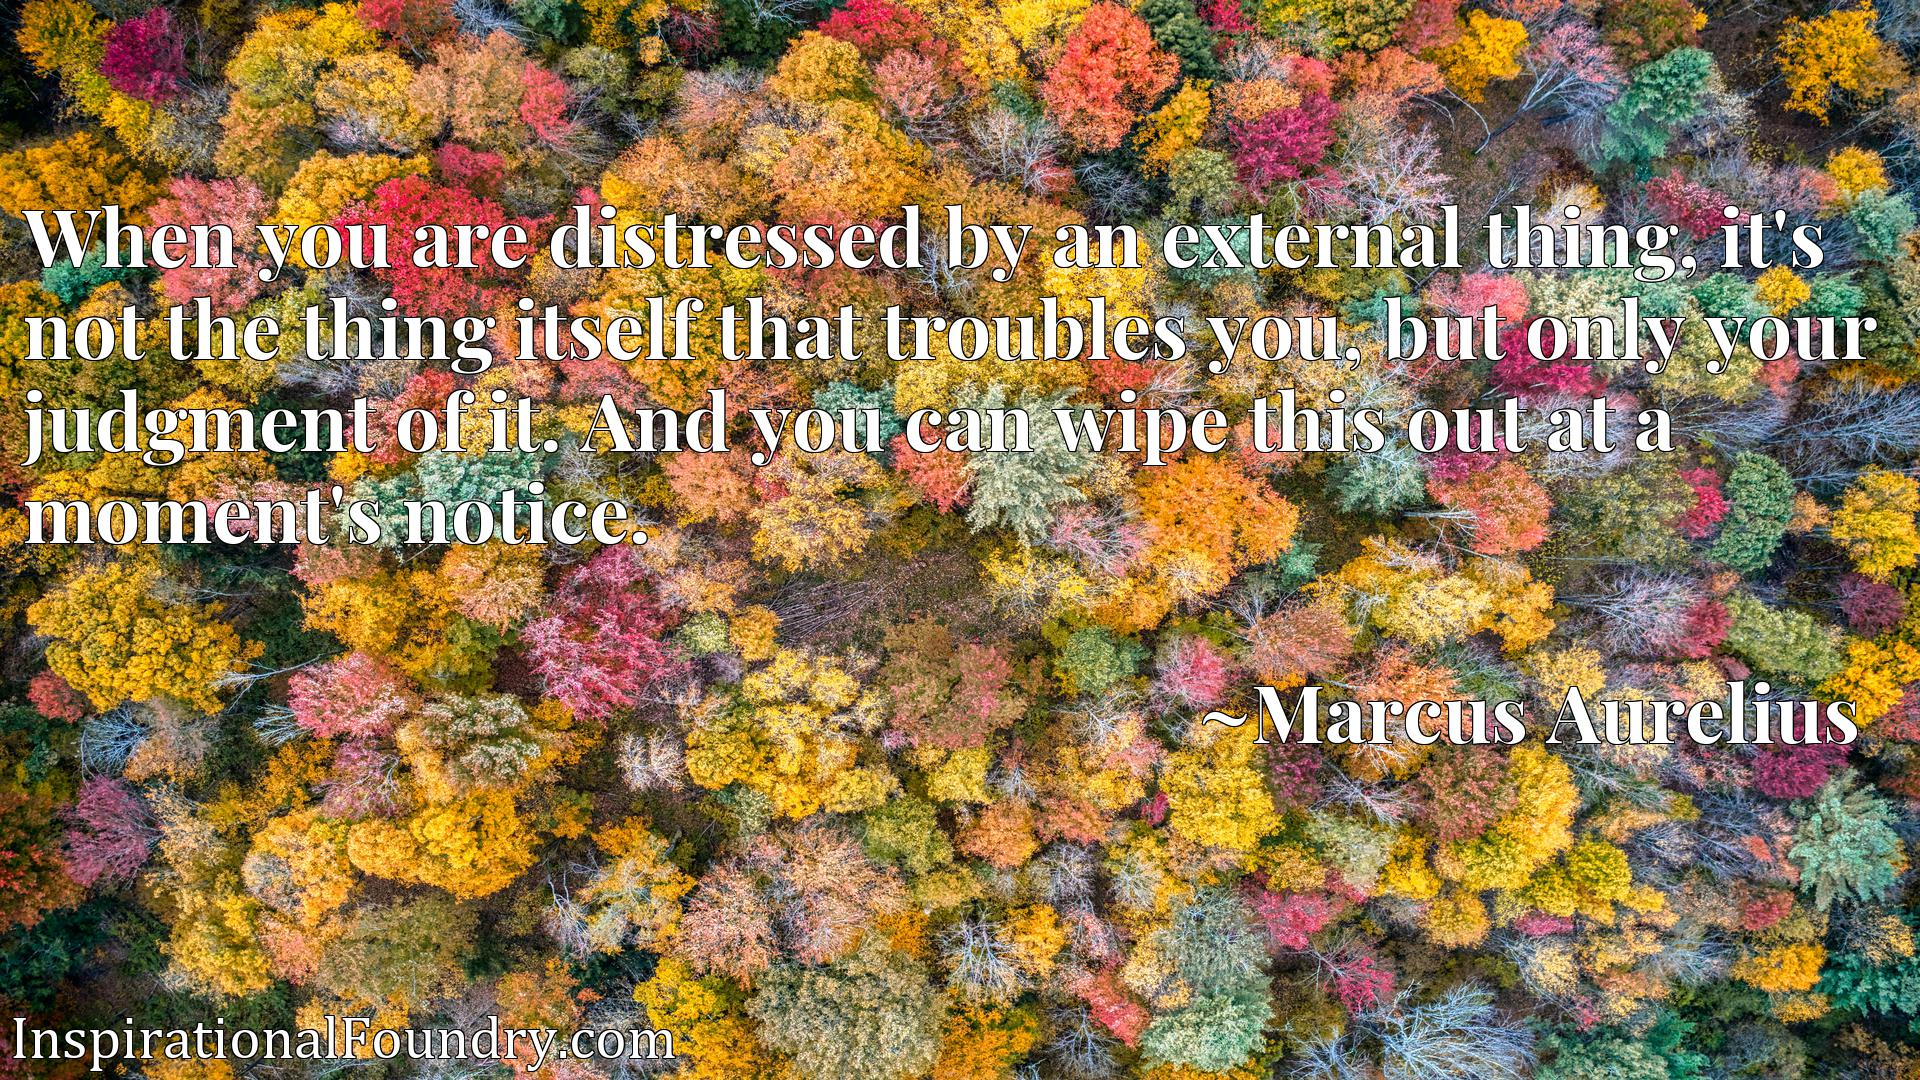 When you are distressed by an external thing, it's not the thing itself that troubles you, but only your judgment of it. And you can wipe this out at a moment's notice.